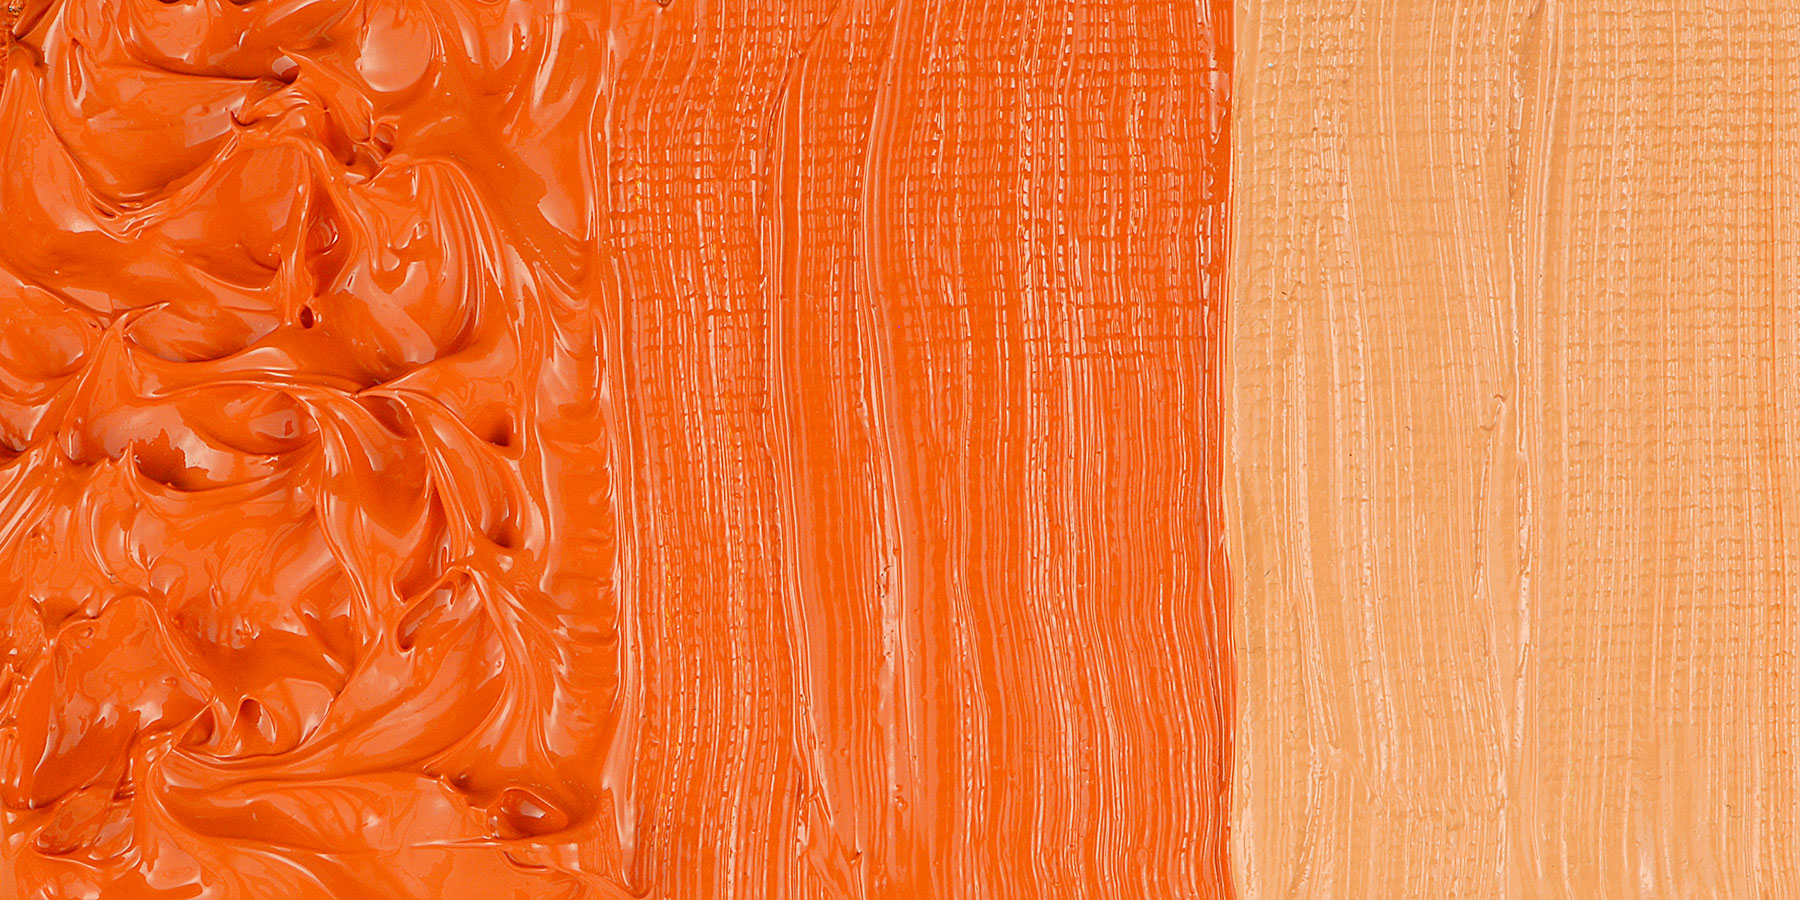 Substitute for cadmium orange archive wetcanvas nvjuhfo Image collections